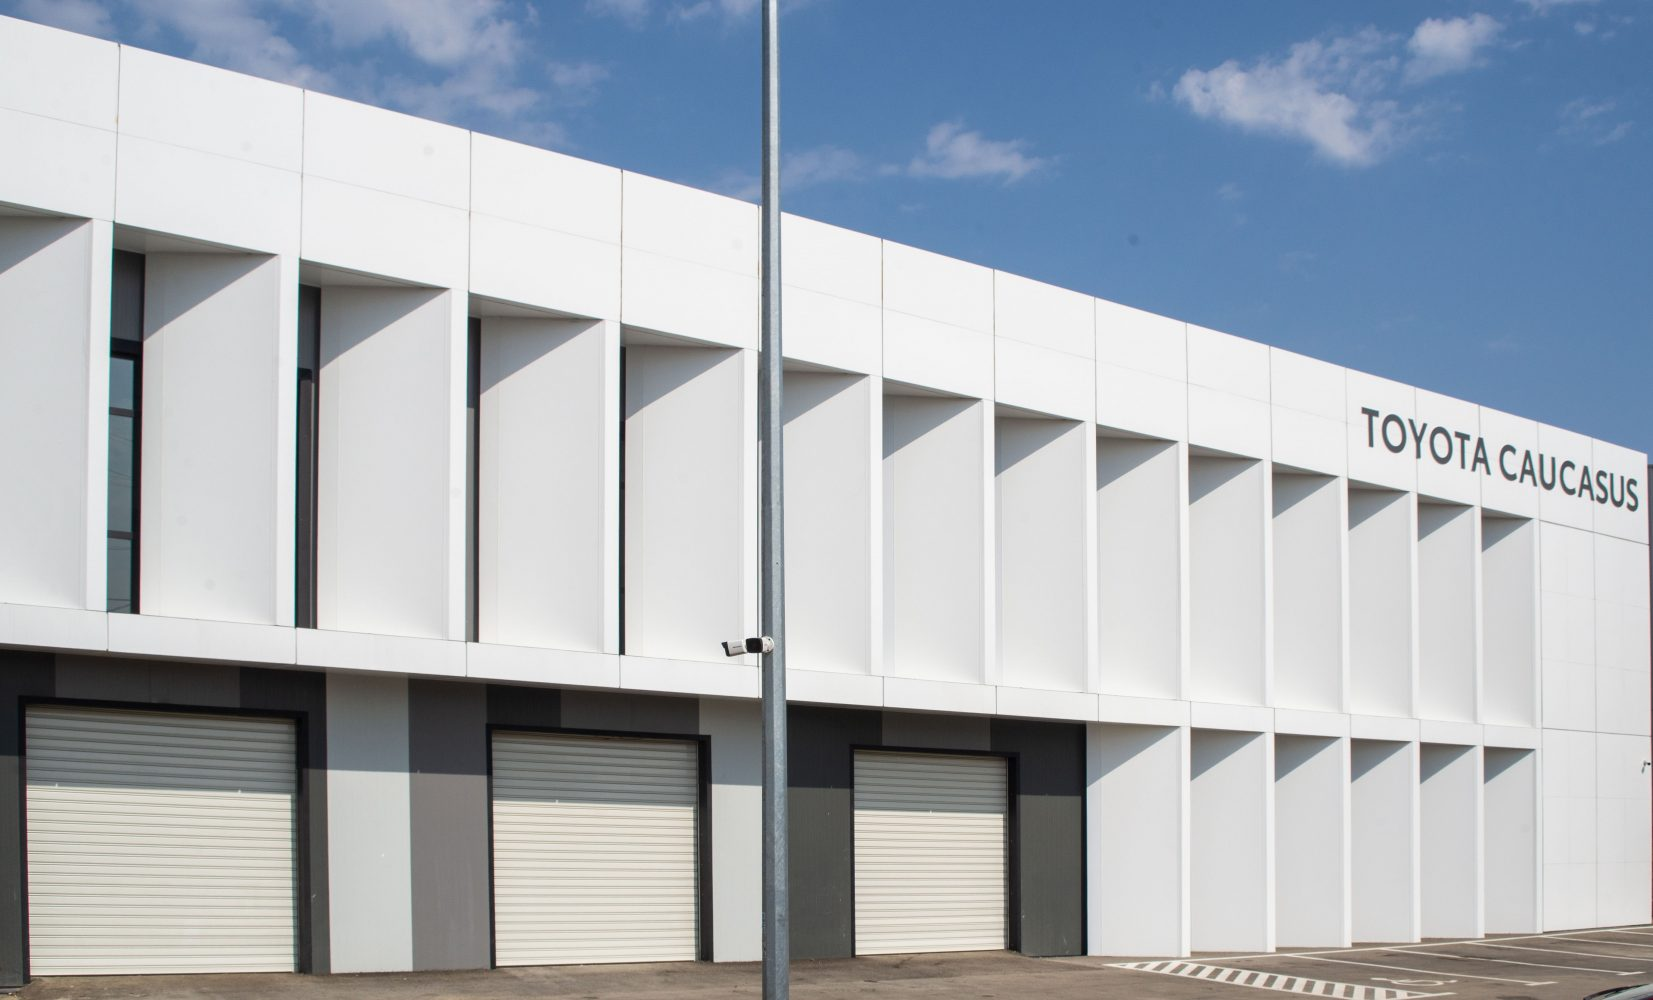 Construction of a warehouse for Toyota Caucasus LLC